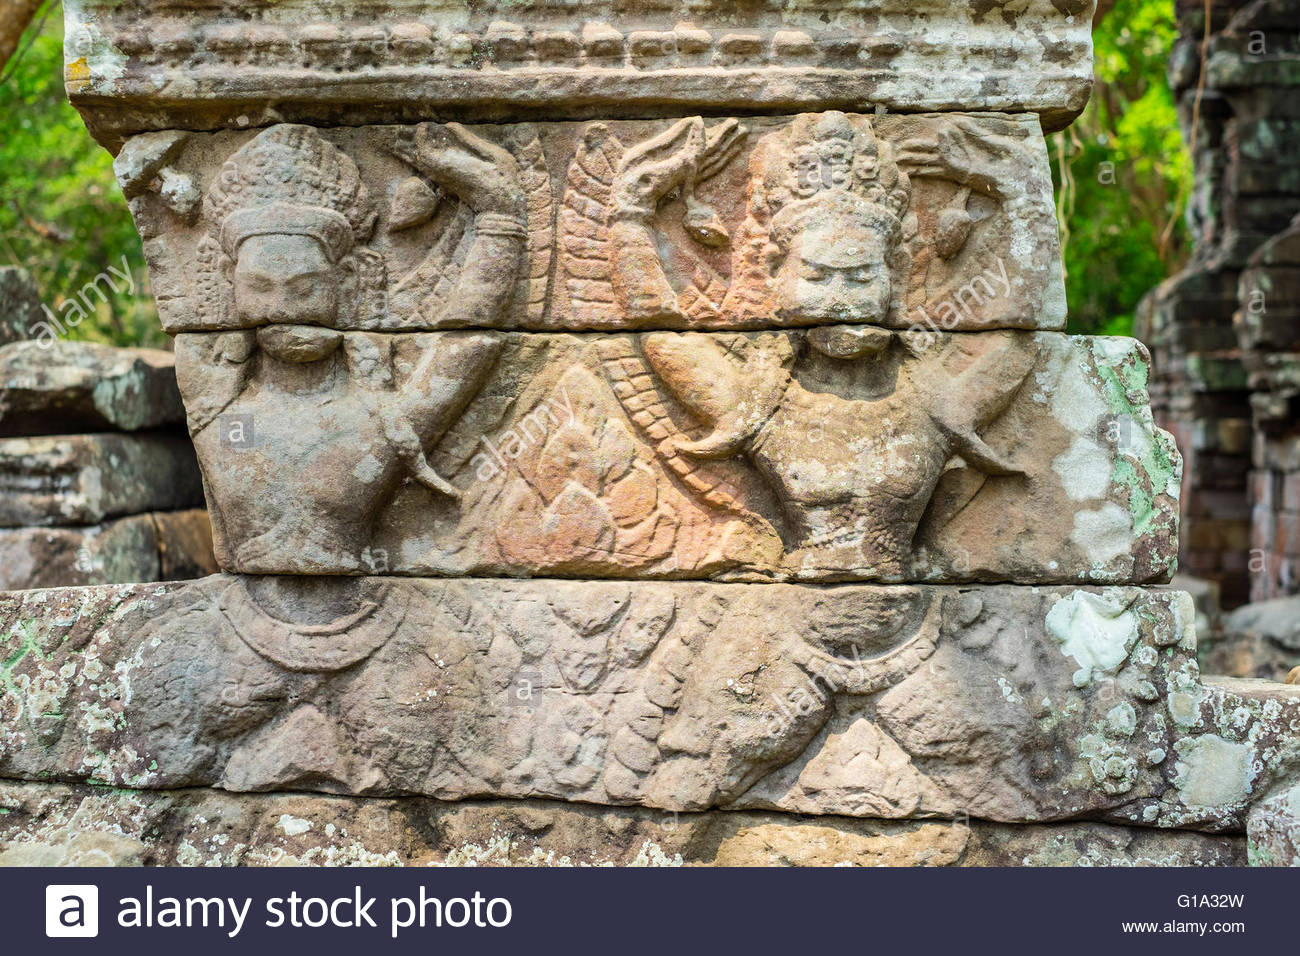 Stone carvings at Banteay Chhmar, Ankorian-era temple ruins, Banteay Meanchey Province, Cambodia - Stock Image